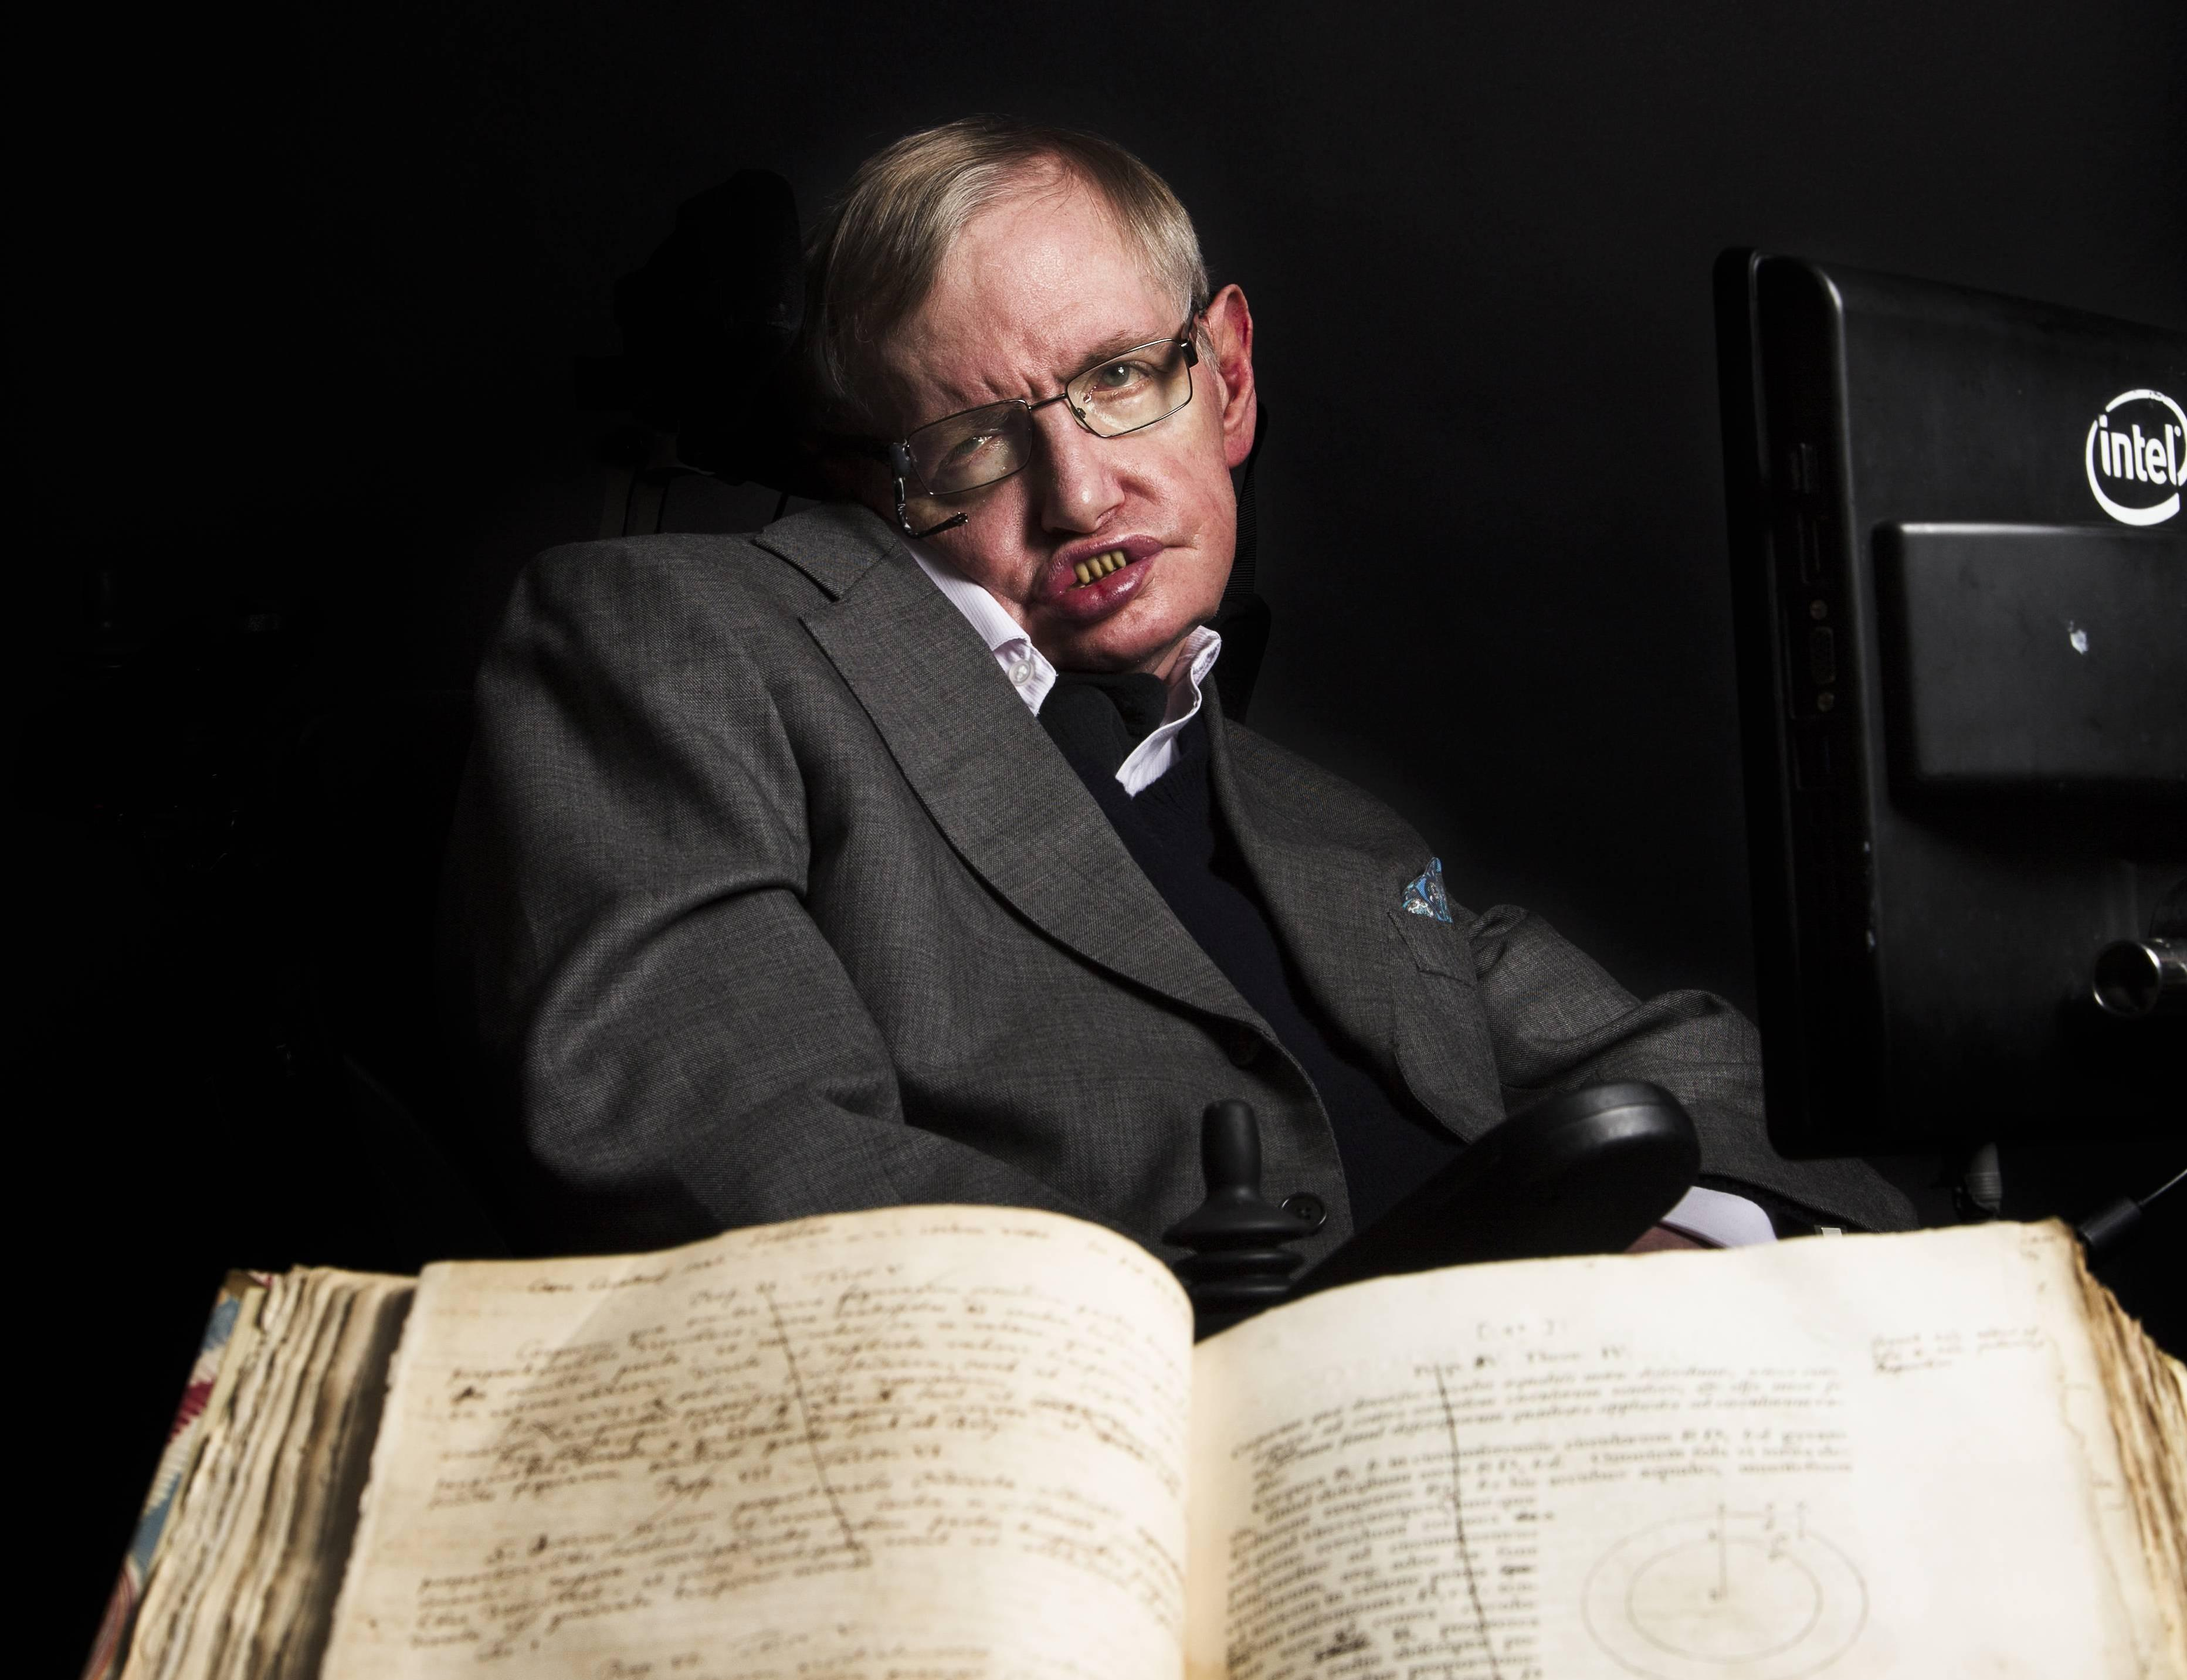 """<p>Stephen Hawking, who died in 2018, is pictured with Isaac Newton's own annotated copy of """"Principia Mathematica.""""</p>"""